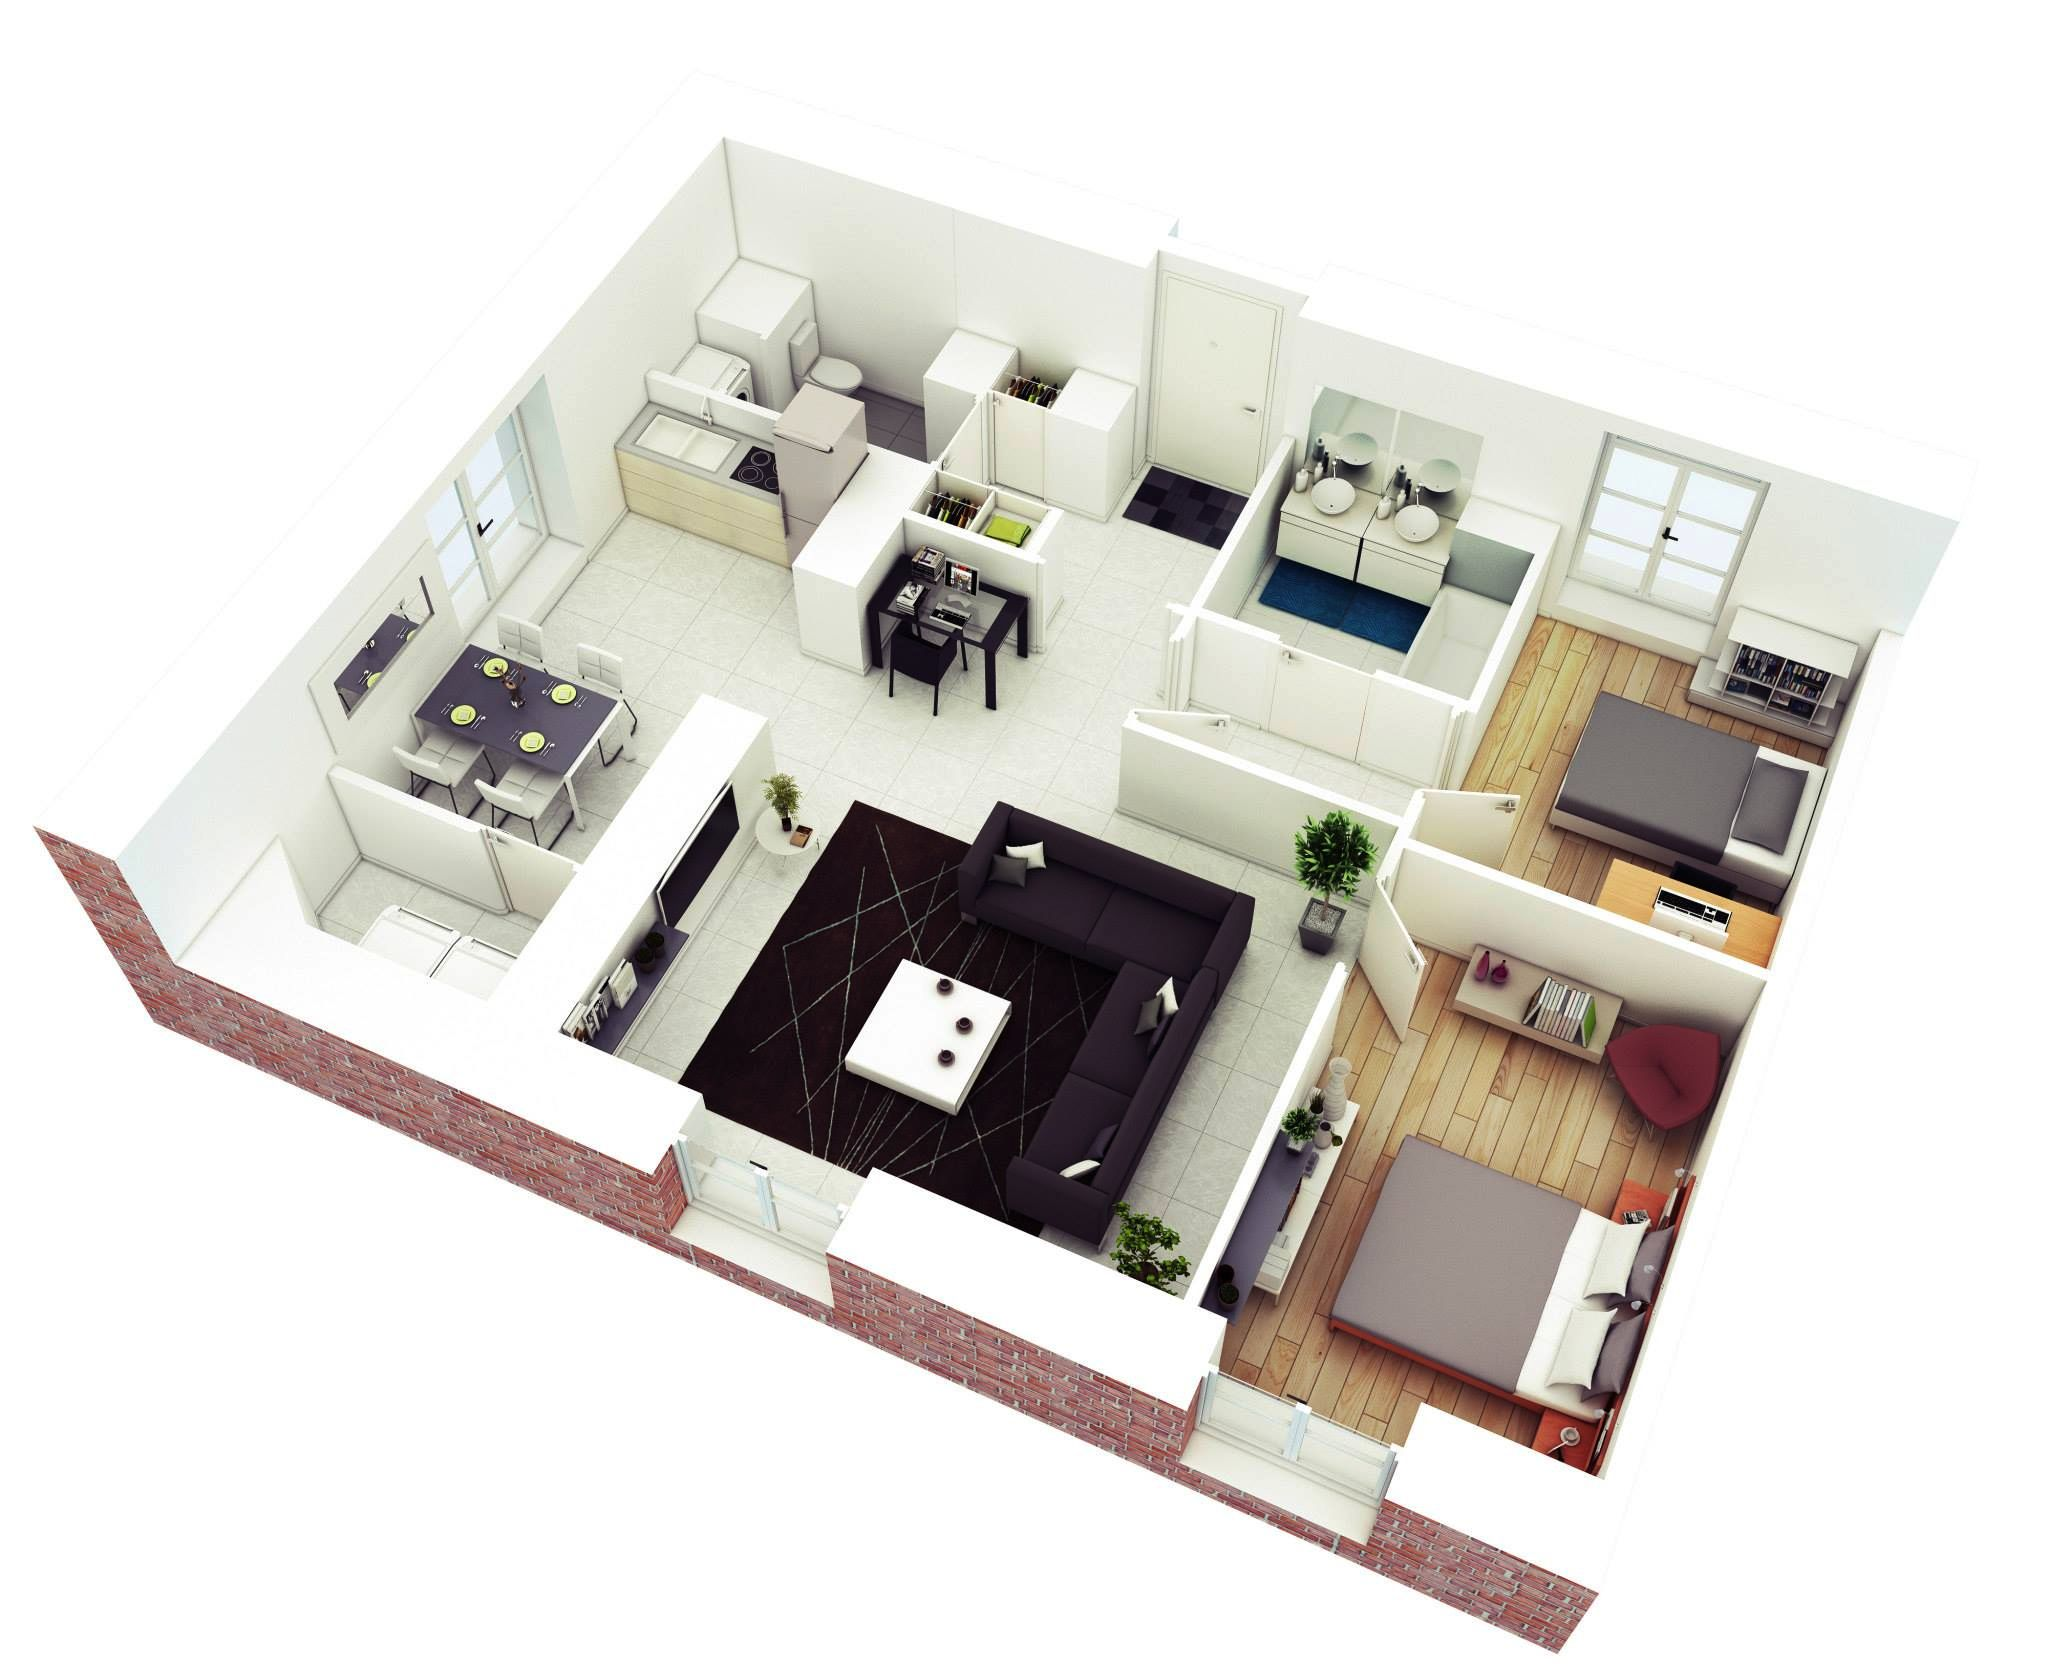 2 Bedroom Floor Plans. Ideas